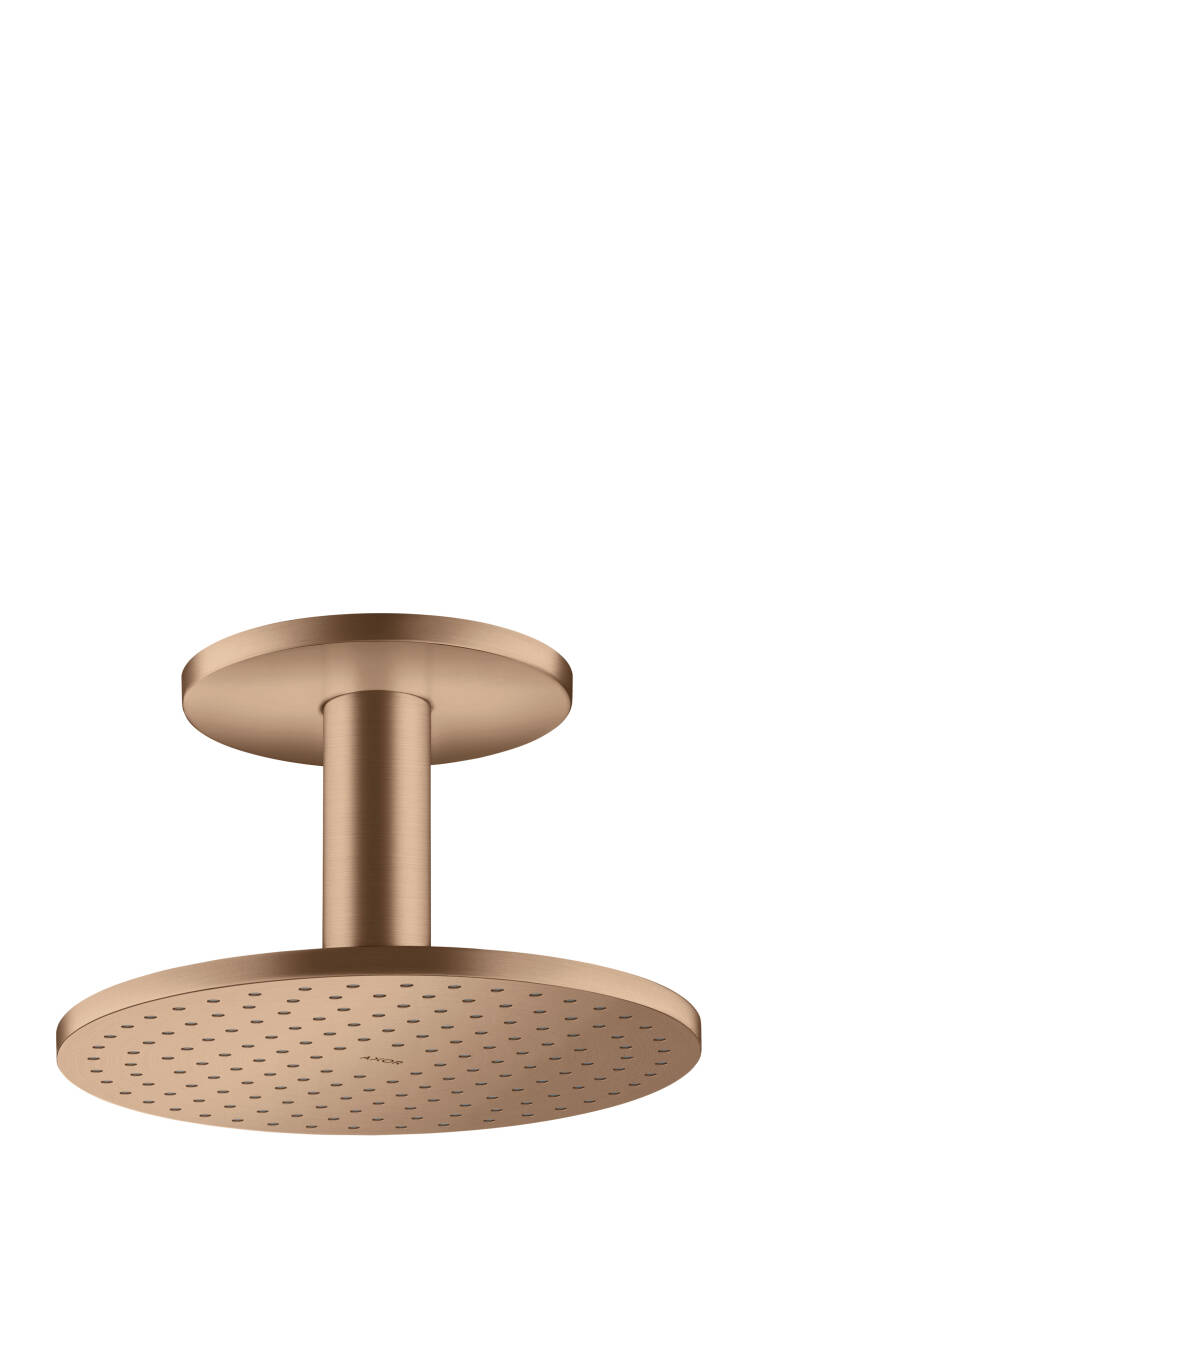 Overhead shower 250 1jet with ceiling connection, Brushed Red Gold, 35286310